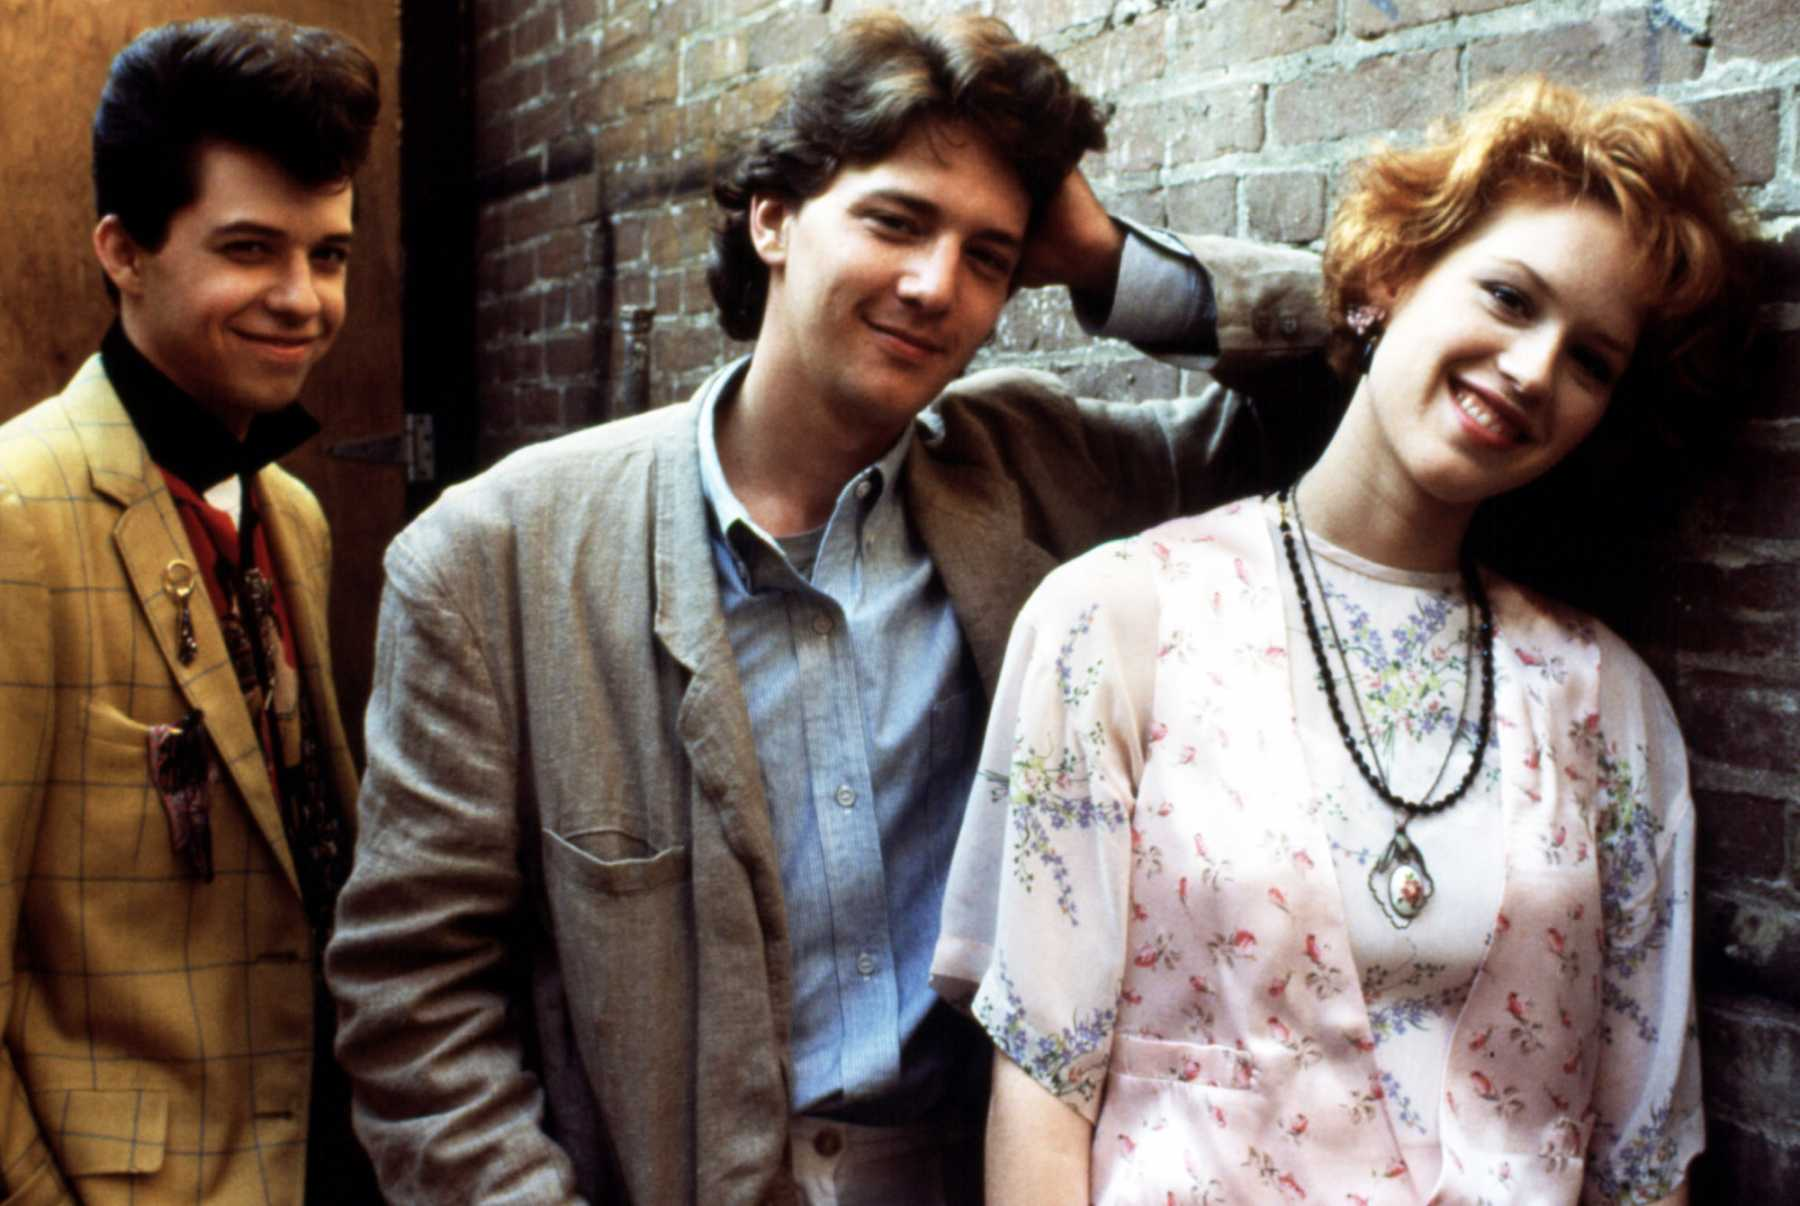 jon cryer weighs in on pretty in pink ending scene 3 lg 20 Good-Looking Facts You Probably Never Knew About Pretty In Pink